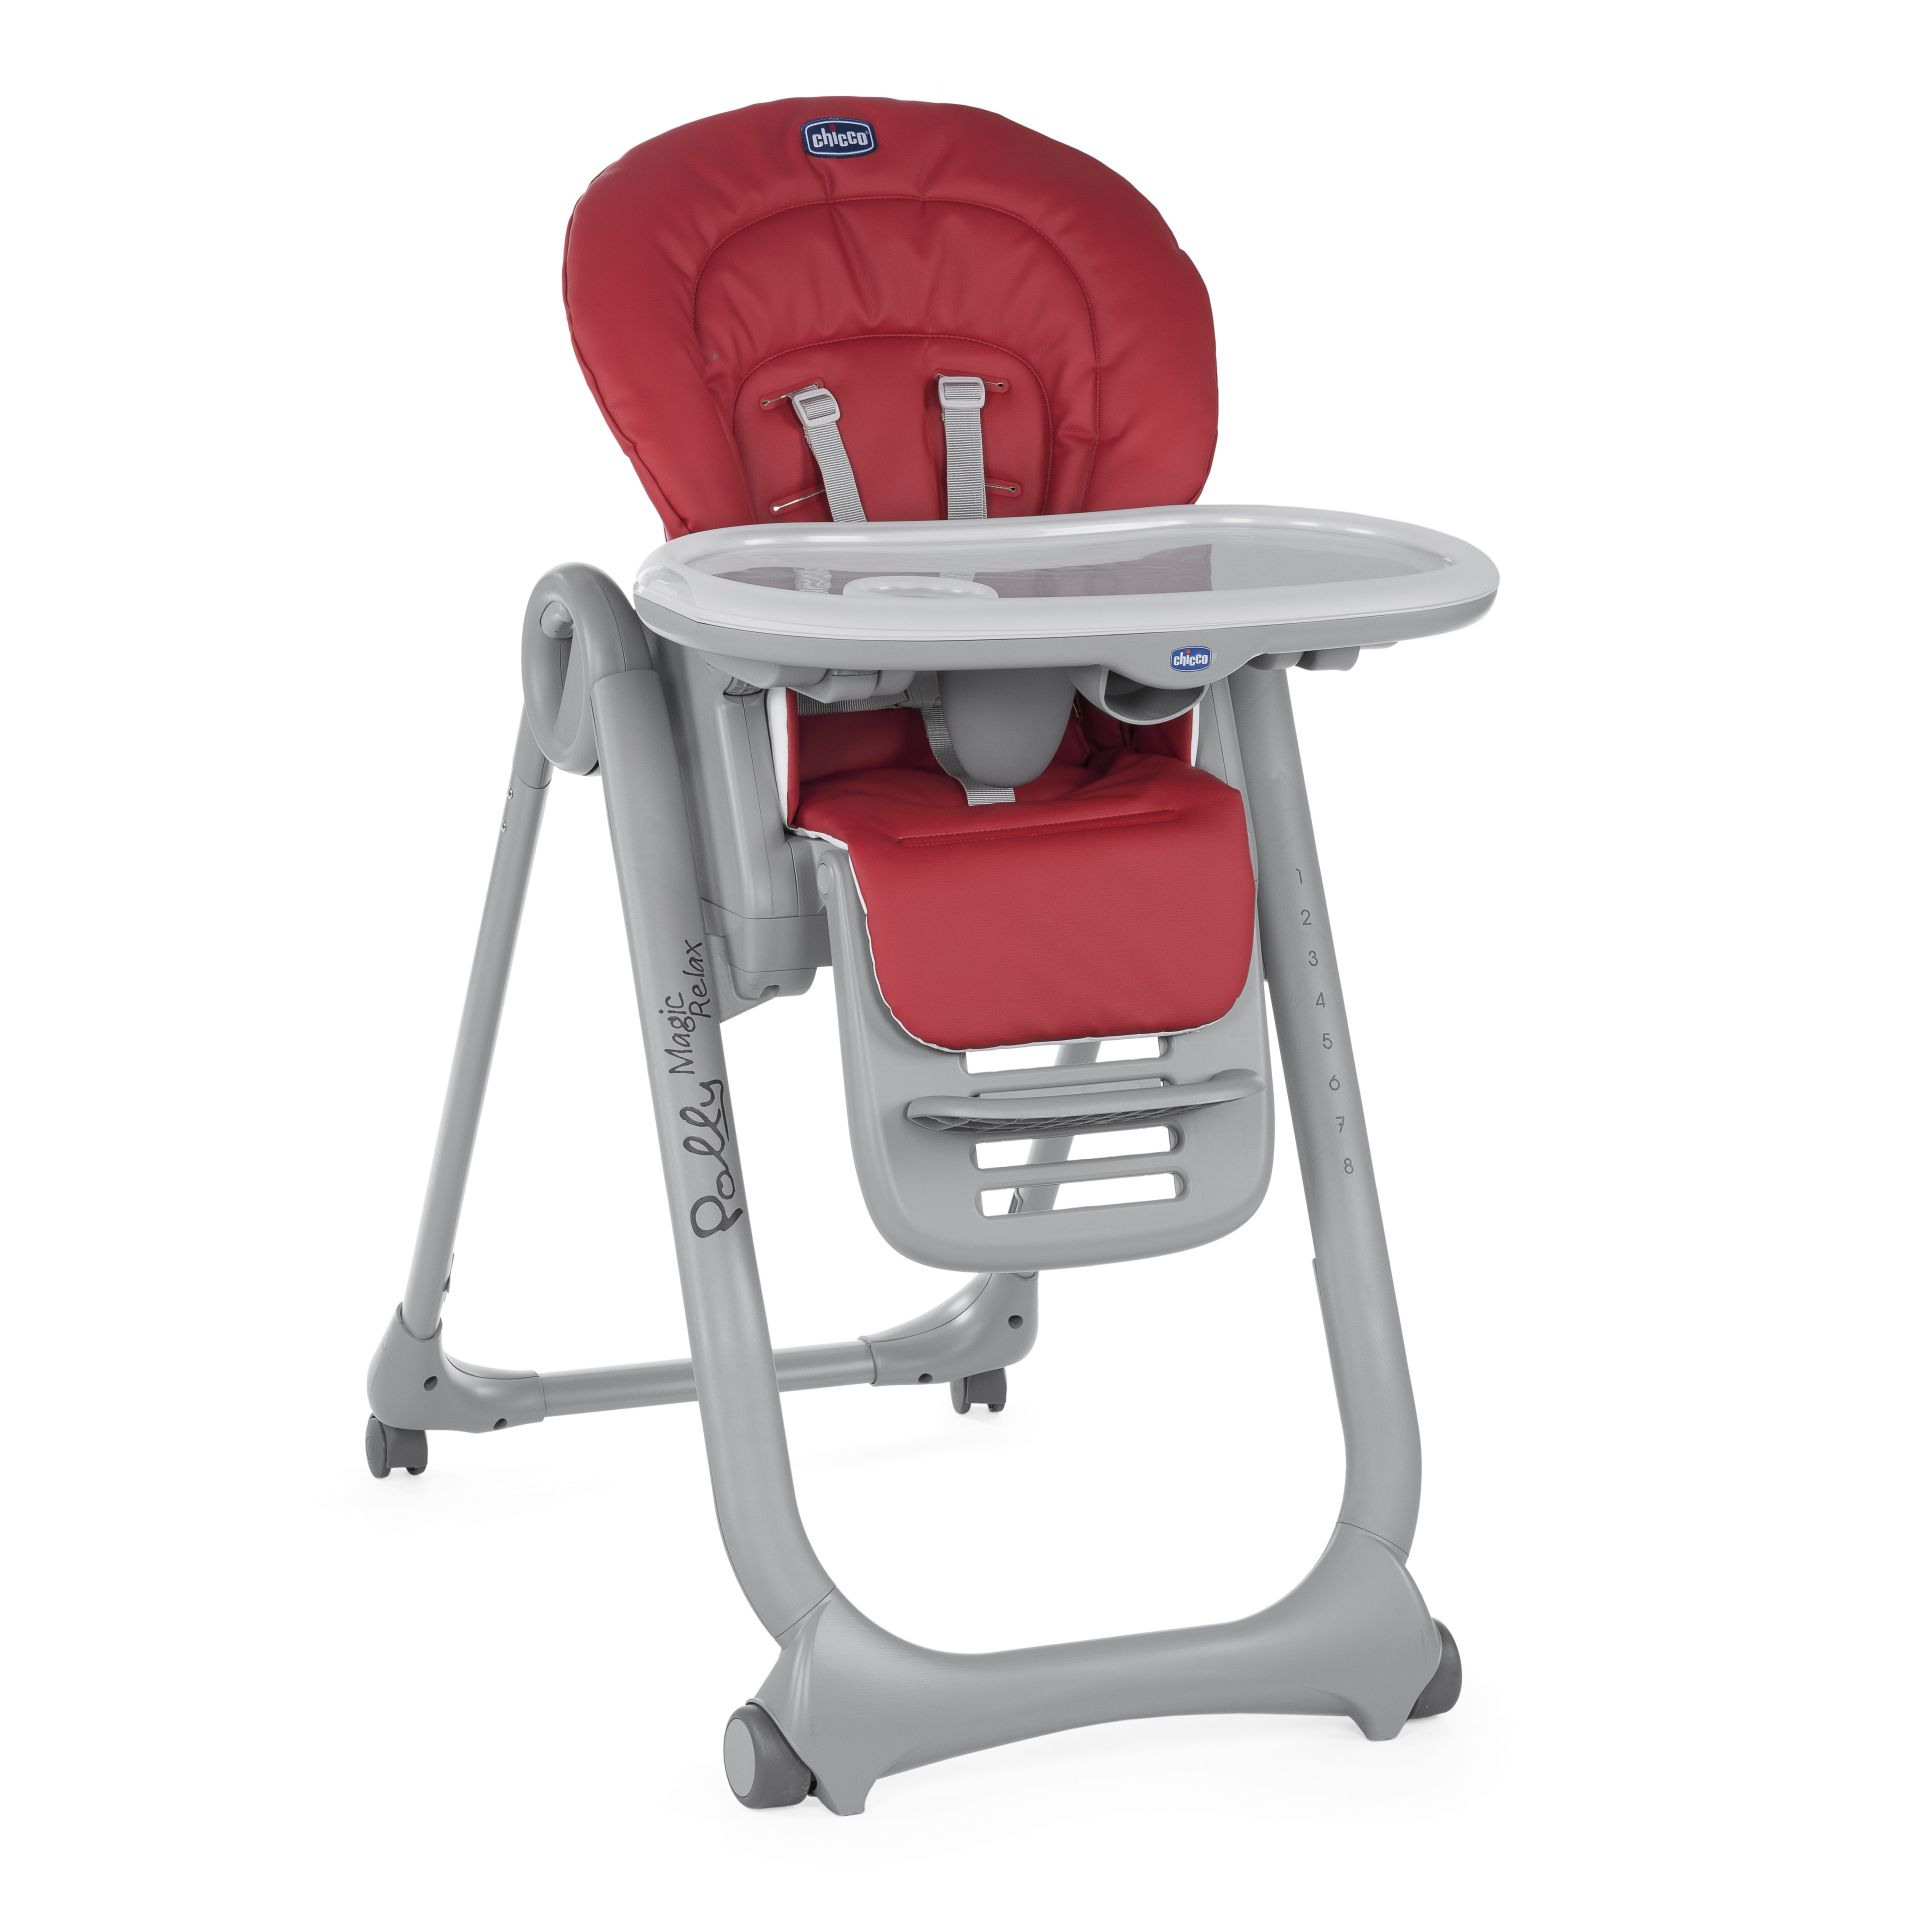 Superbe Chicco Highchair Polly Magic Relax RED 2018   Large Image 1 ...